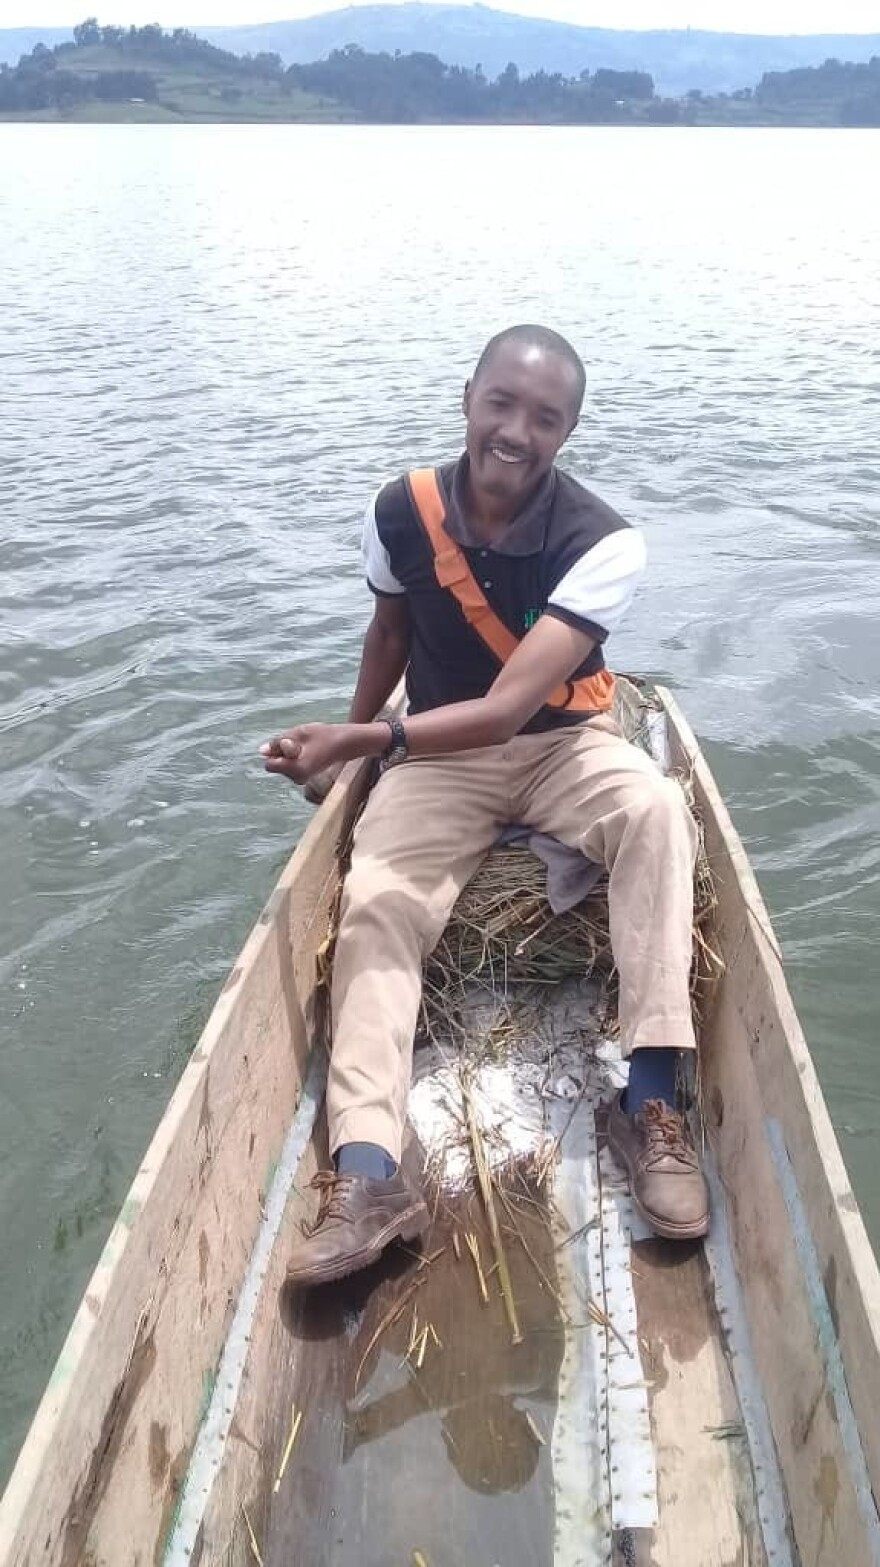 Edward Arineitwe, a nurse, rents a canoe to paddle himself to the health facility where he works — it's located on an island.